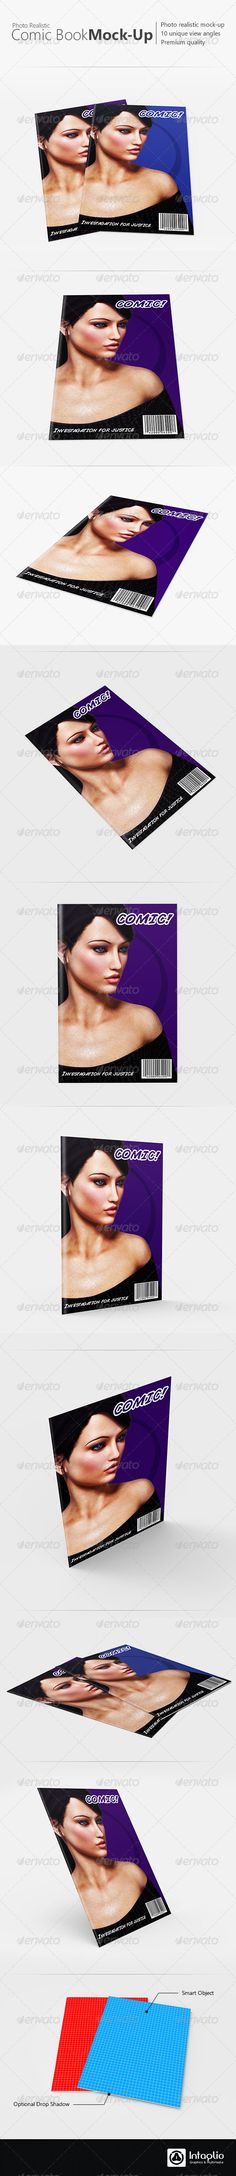 Photorealistic Comic Book Mockup - Miscellaneous Print  http://graphicriver.net/item/photorealistic-comic-book-mockup/3139896?ref=mudi  #mockup